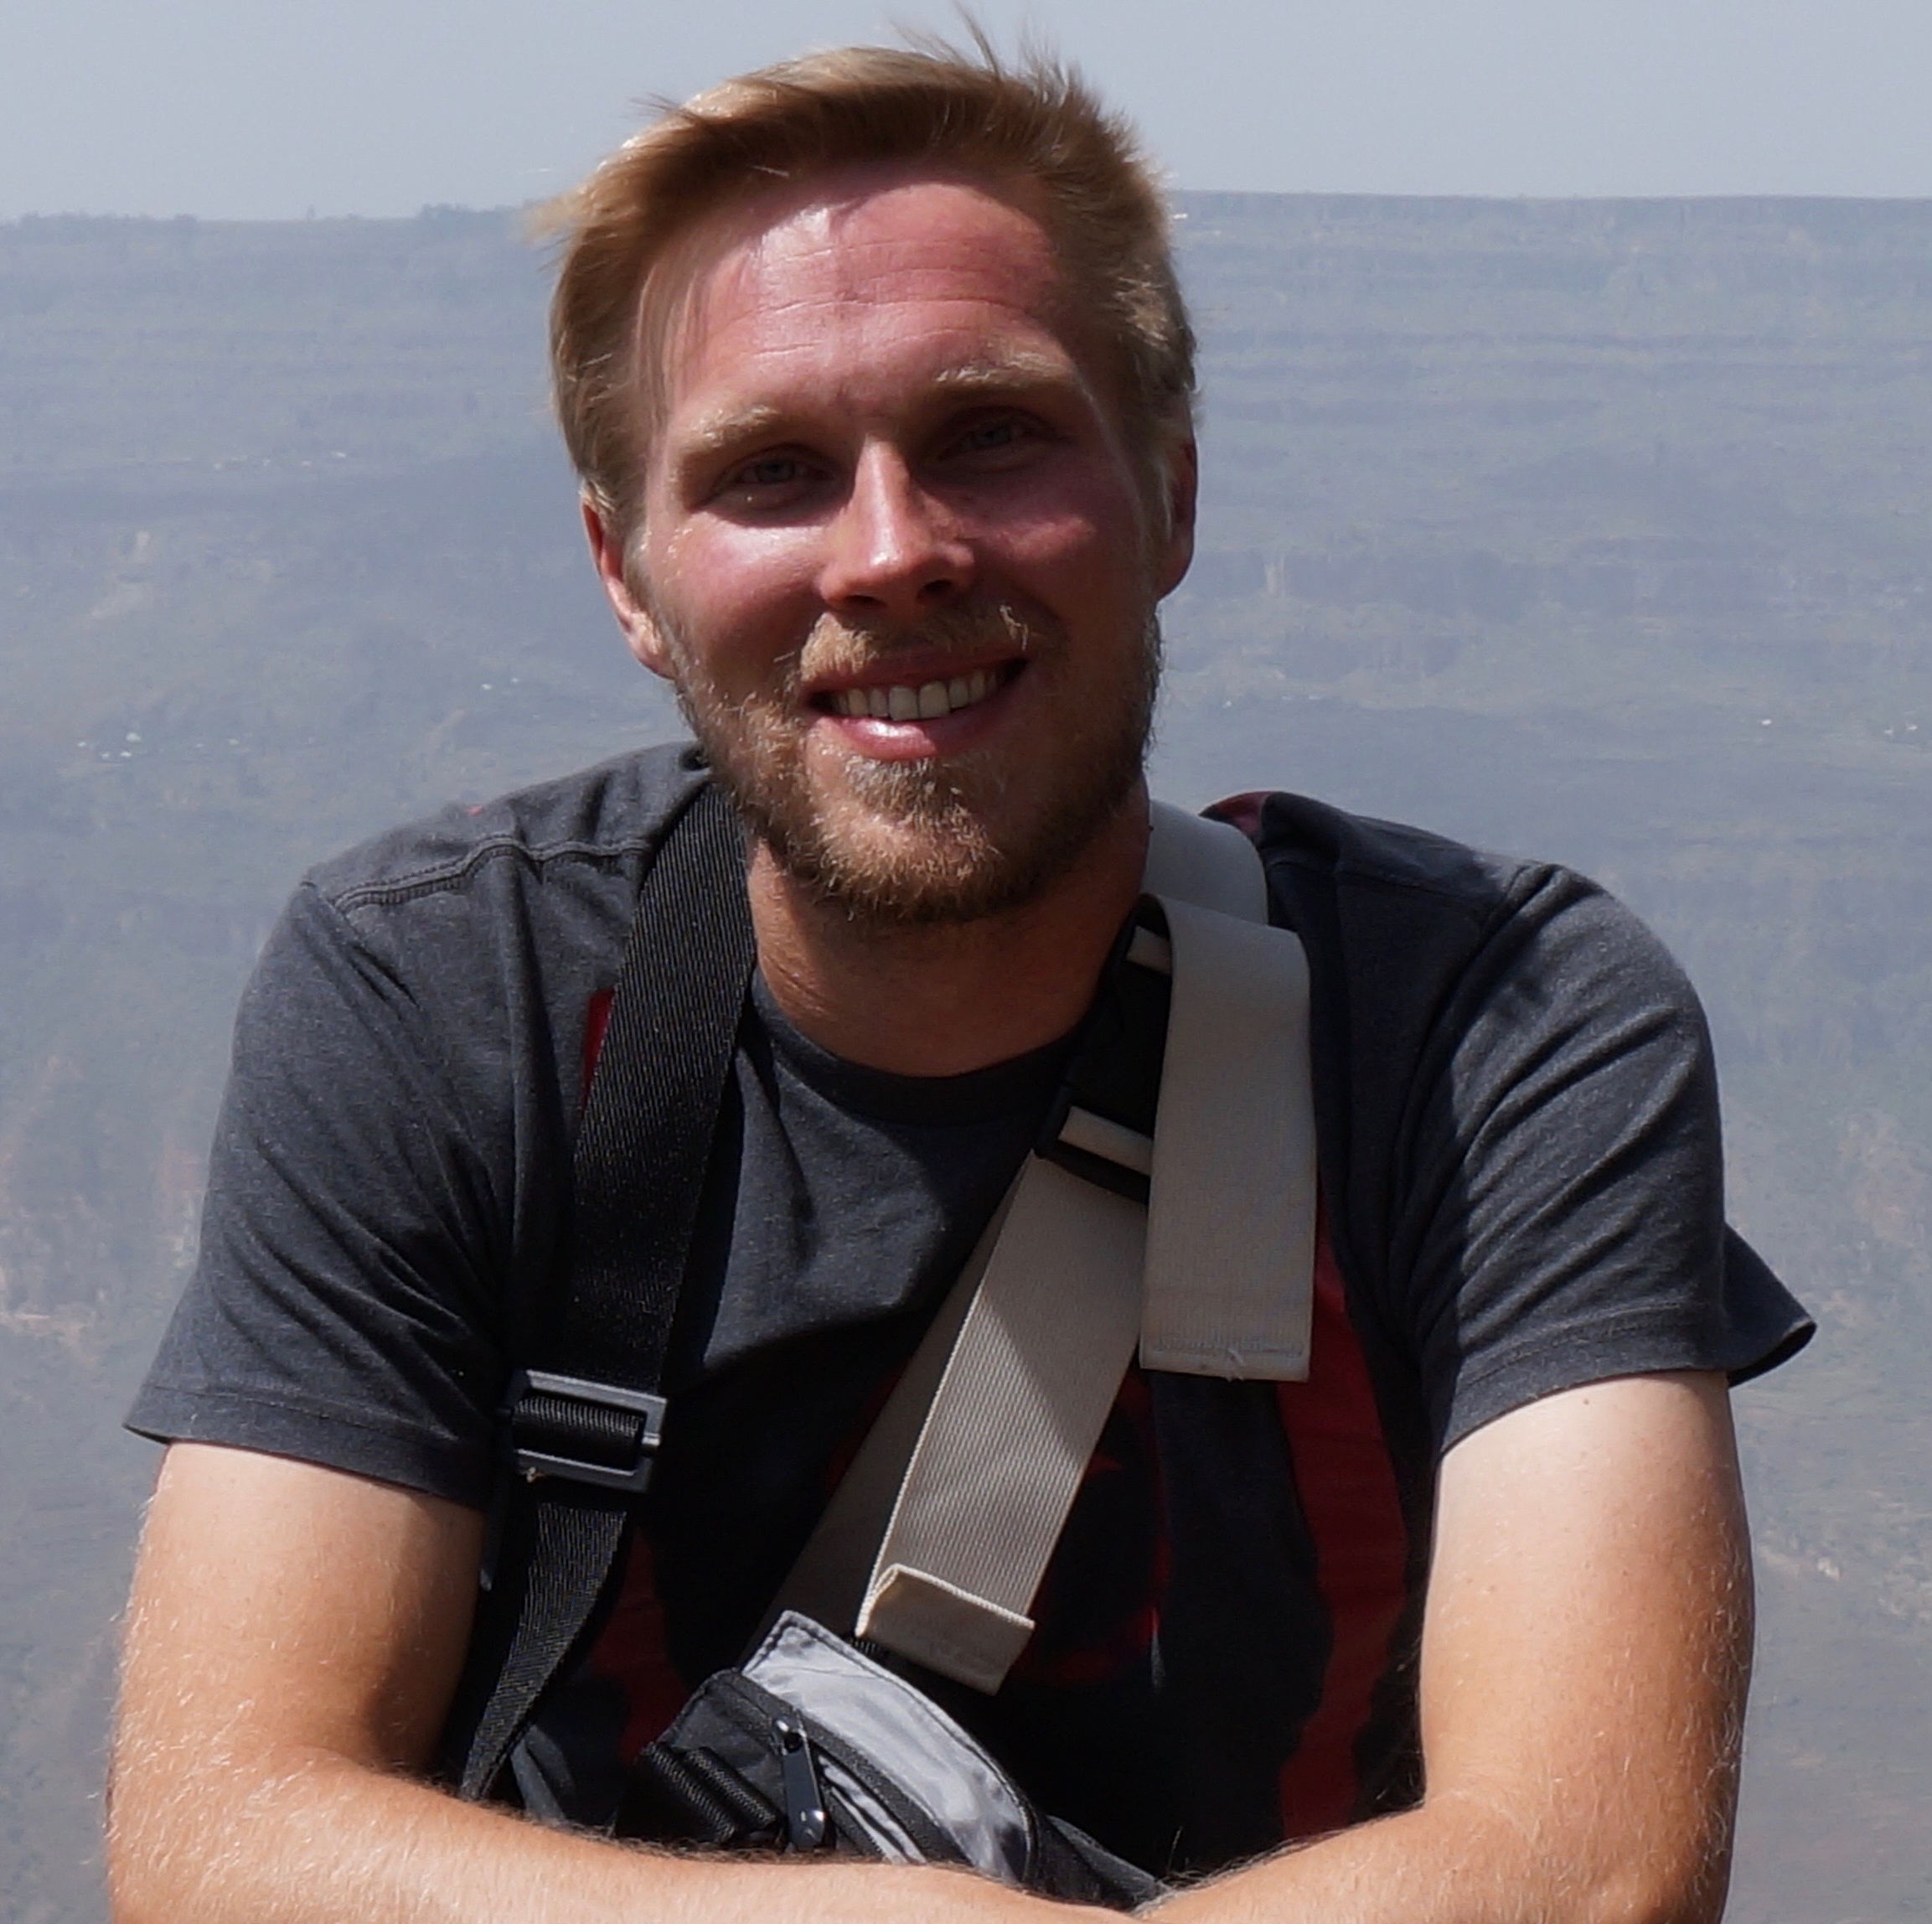 Nicholas Rogerson  Nick is one of the original co-founders of GFI. He teaches Philosophy at the University of Toledo and is currently completing an M.A. at Georgetown's School of Foreign Service, in Washington, D.C. He likes food, travel, books, and being outside.